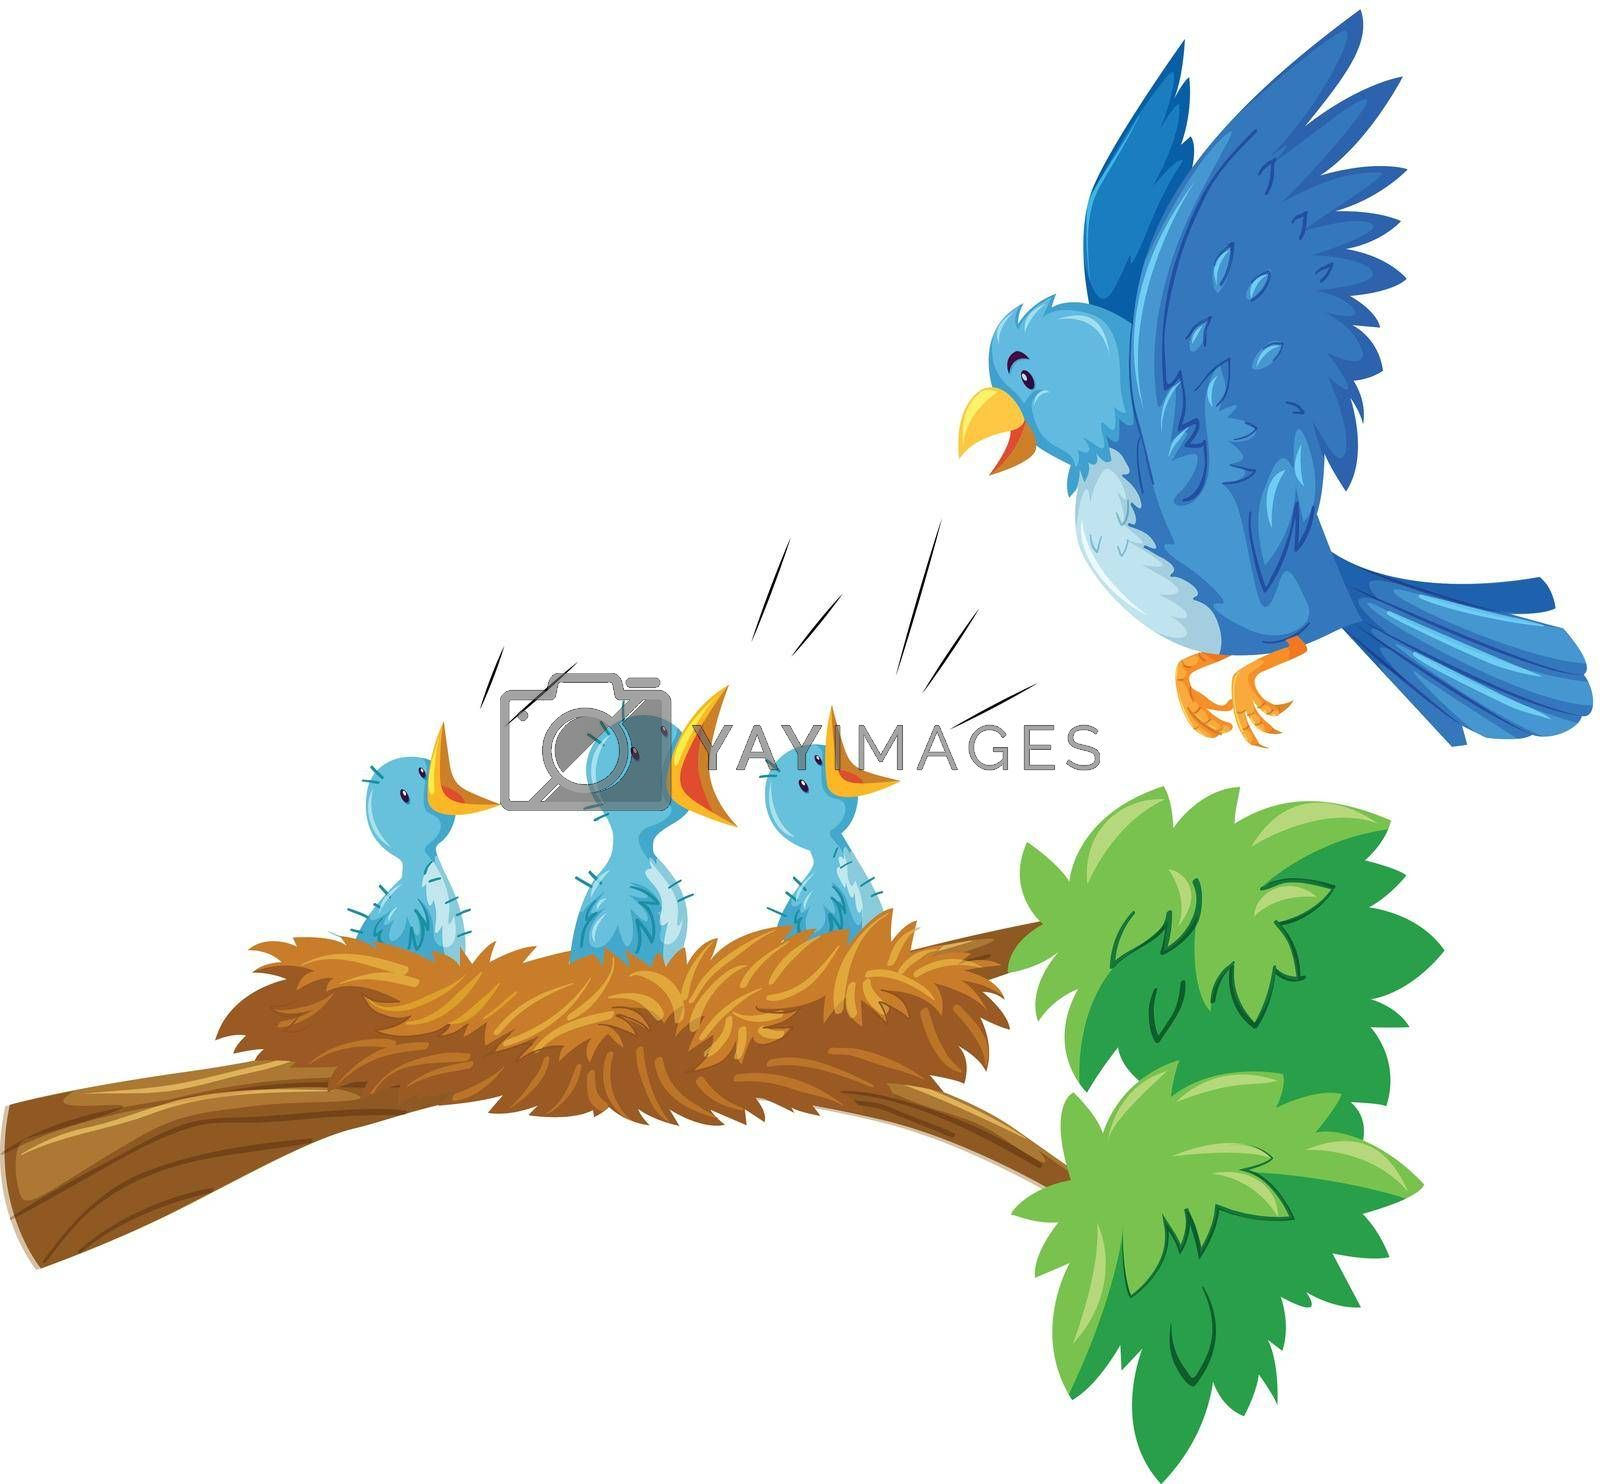 Royalty free image of Mother and babies bird on the branch by iimages